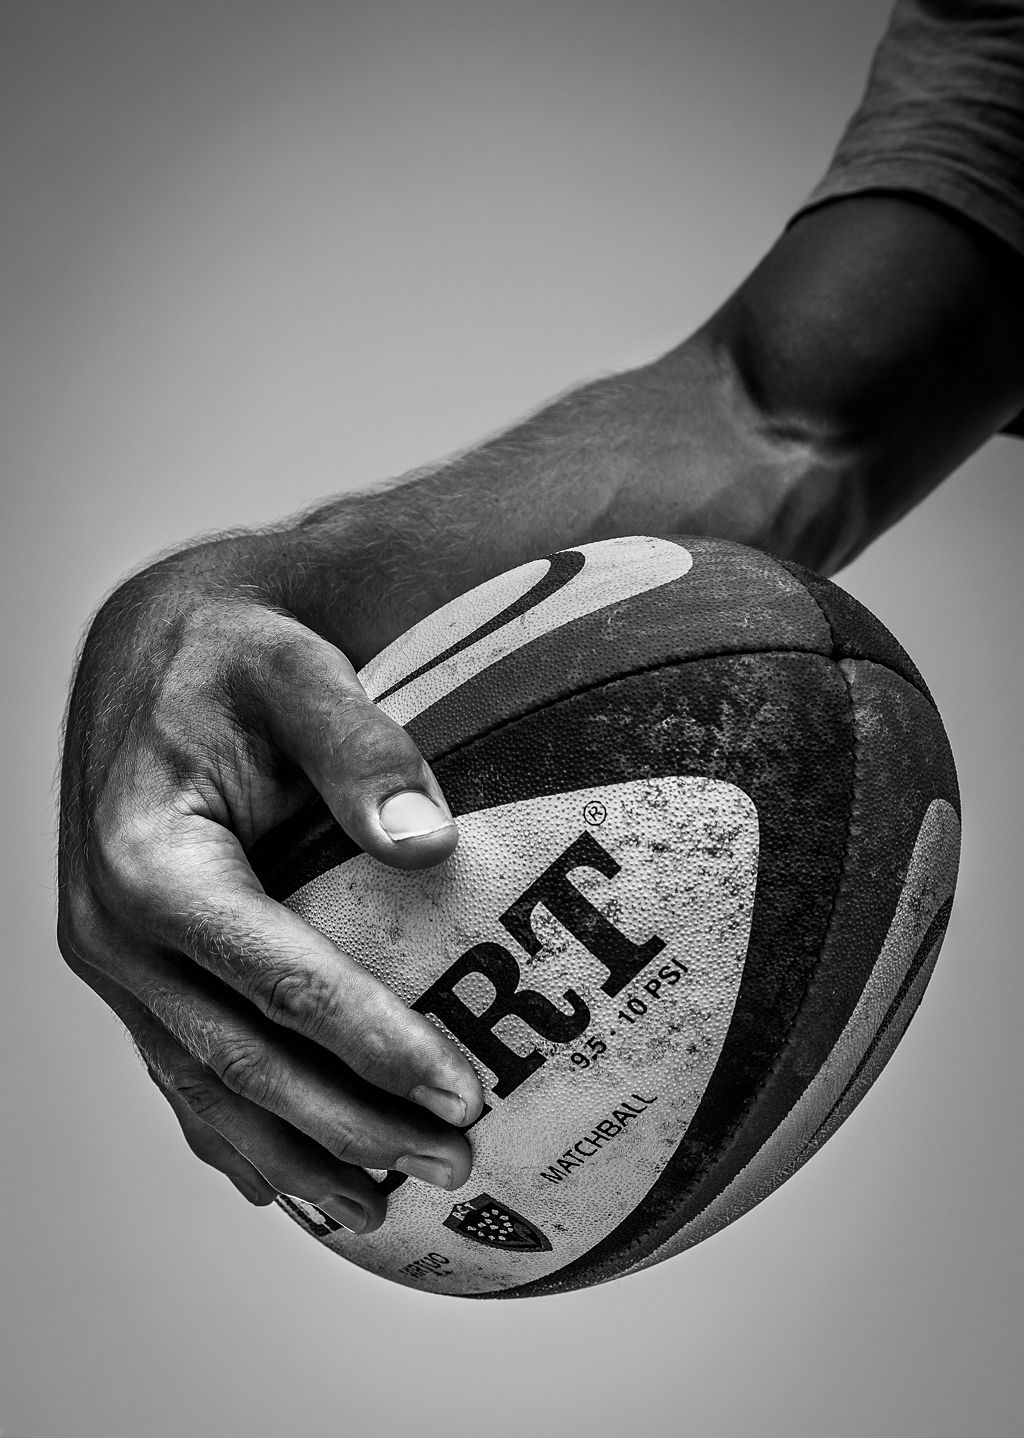 Hand of rugby player Jonny Wilkinson